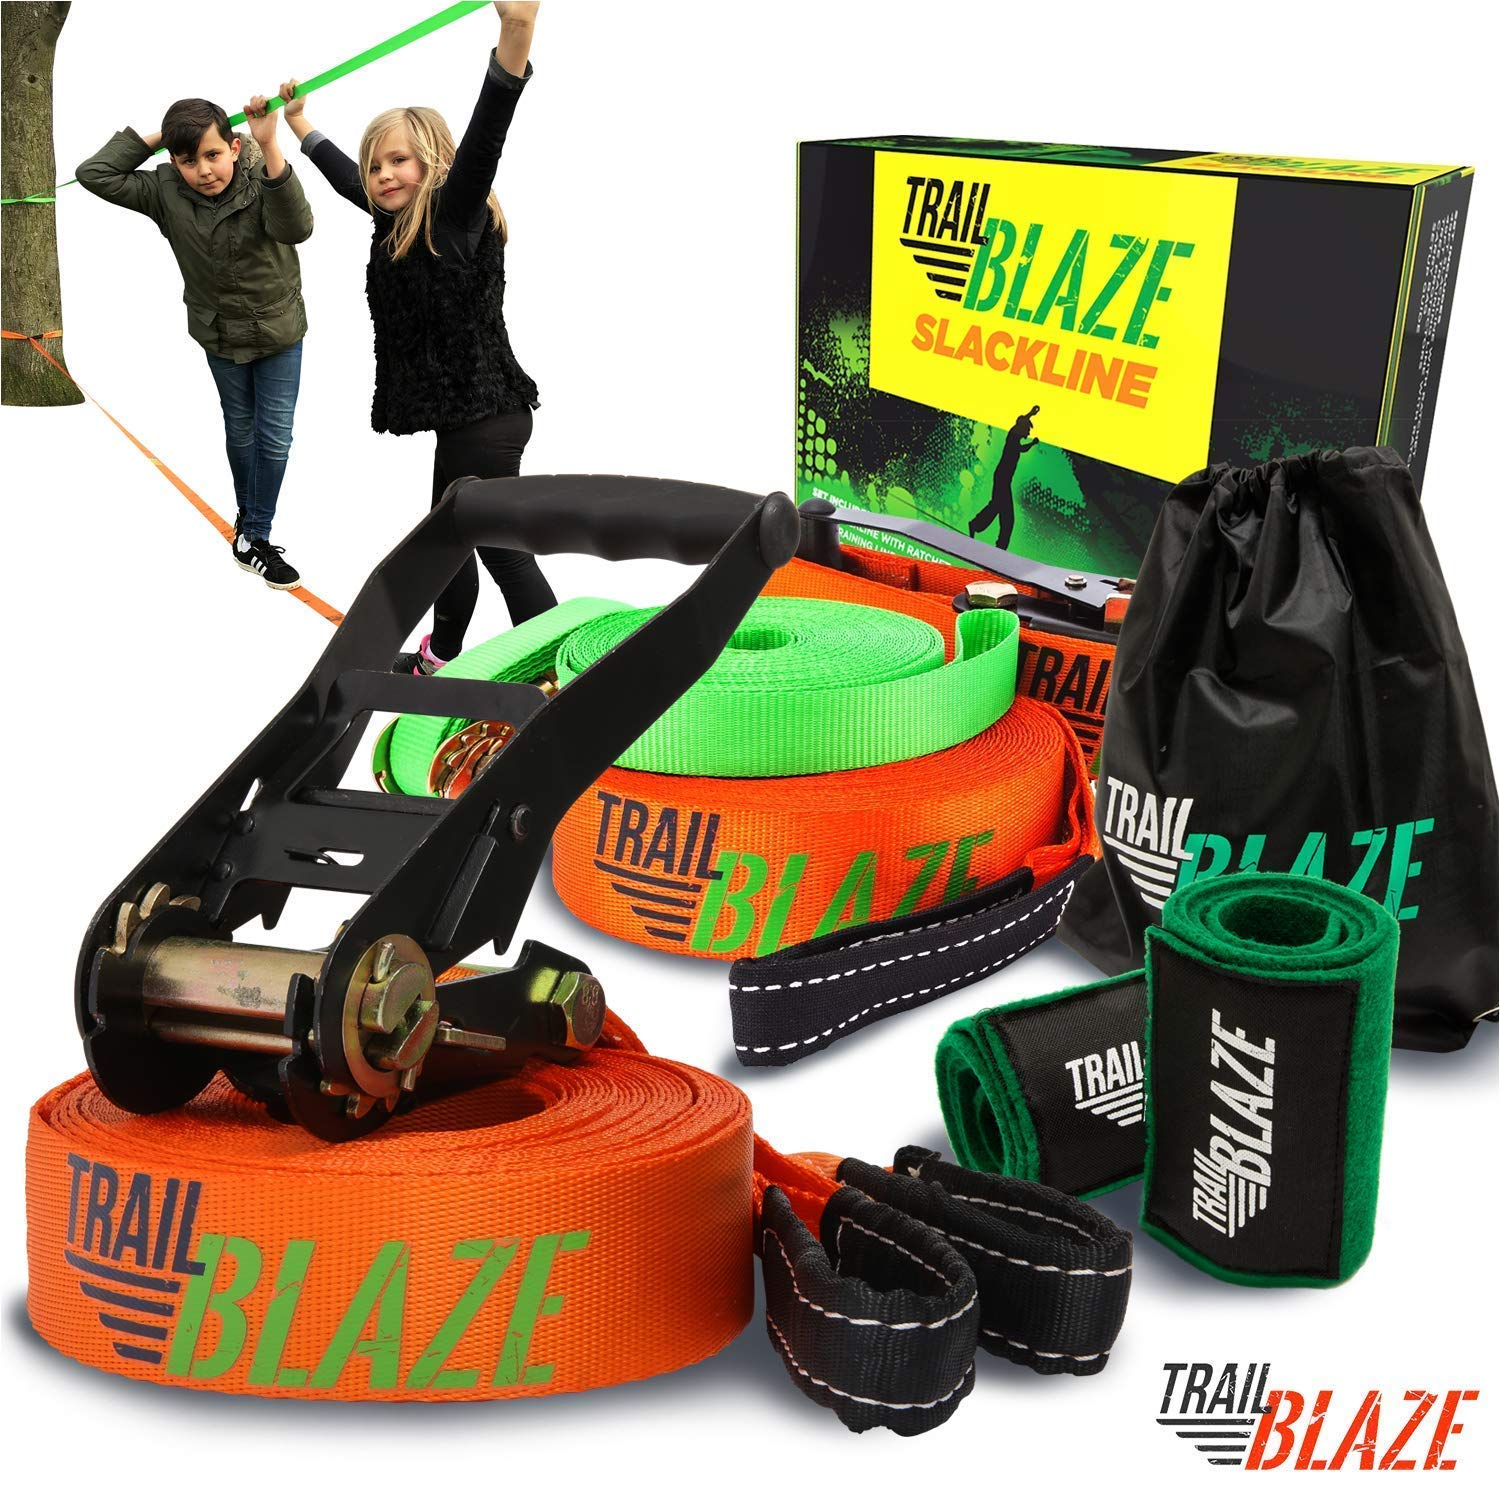 Premium Slackline Kit with Training Line - 60ft Slack Line Longest Ever - Tree Protectors Arm Trainer Ratchet Cover - Ninja Tight Rope for Trees Easy Setup Outdoor Healthy Fun by Trailblaze